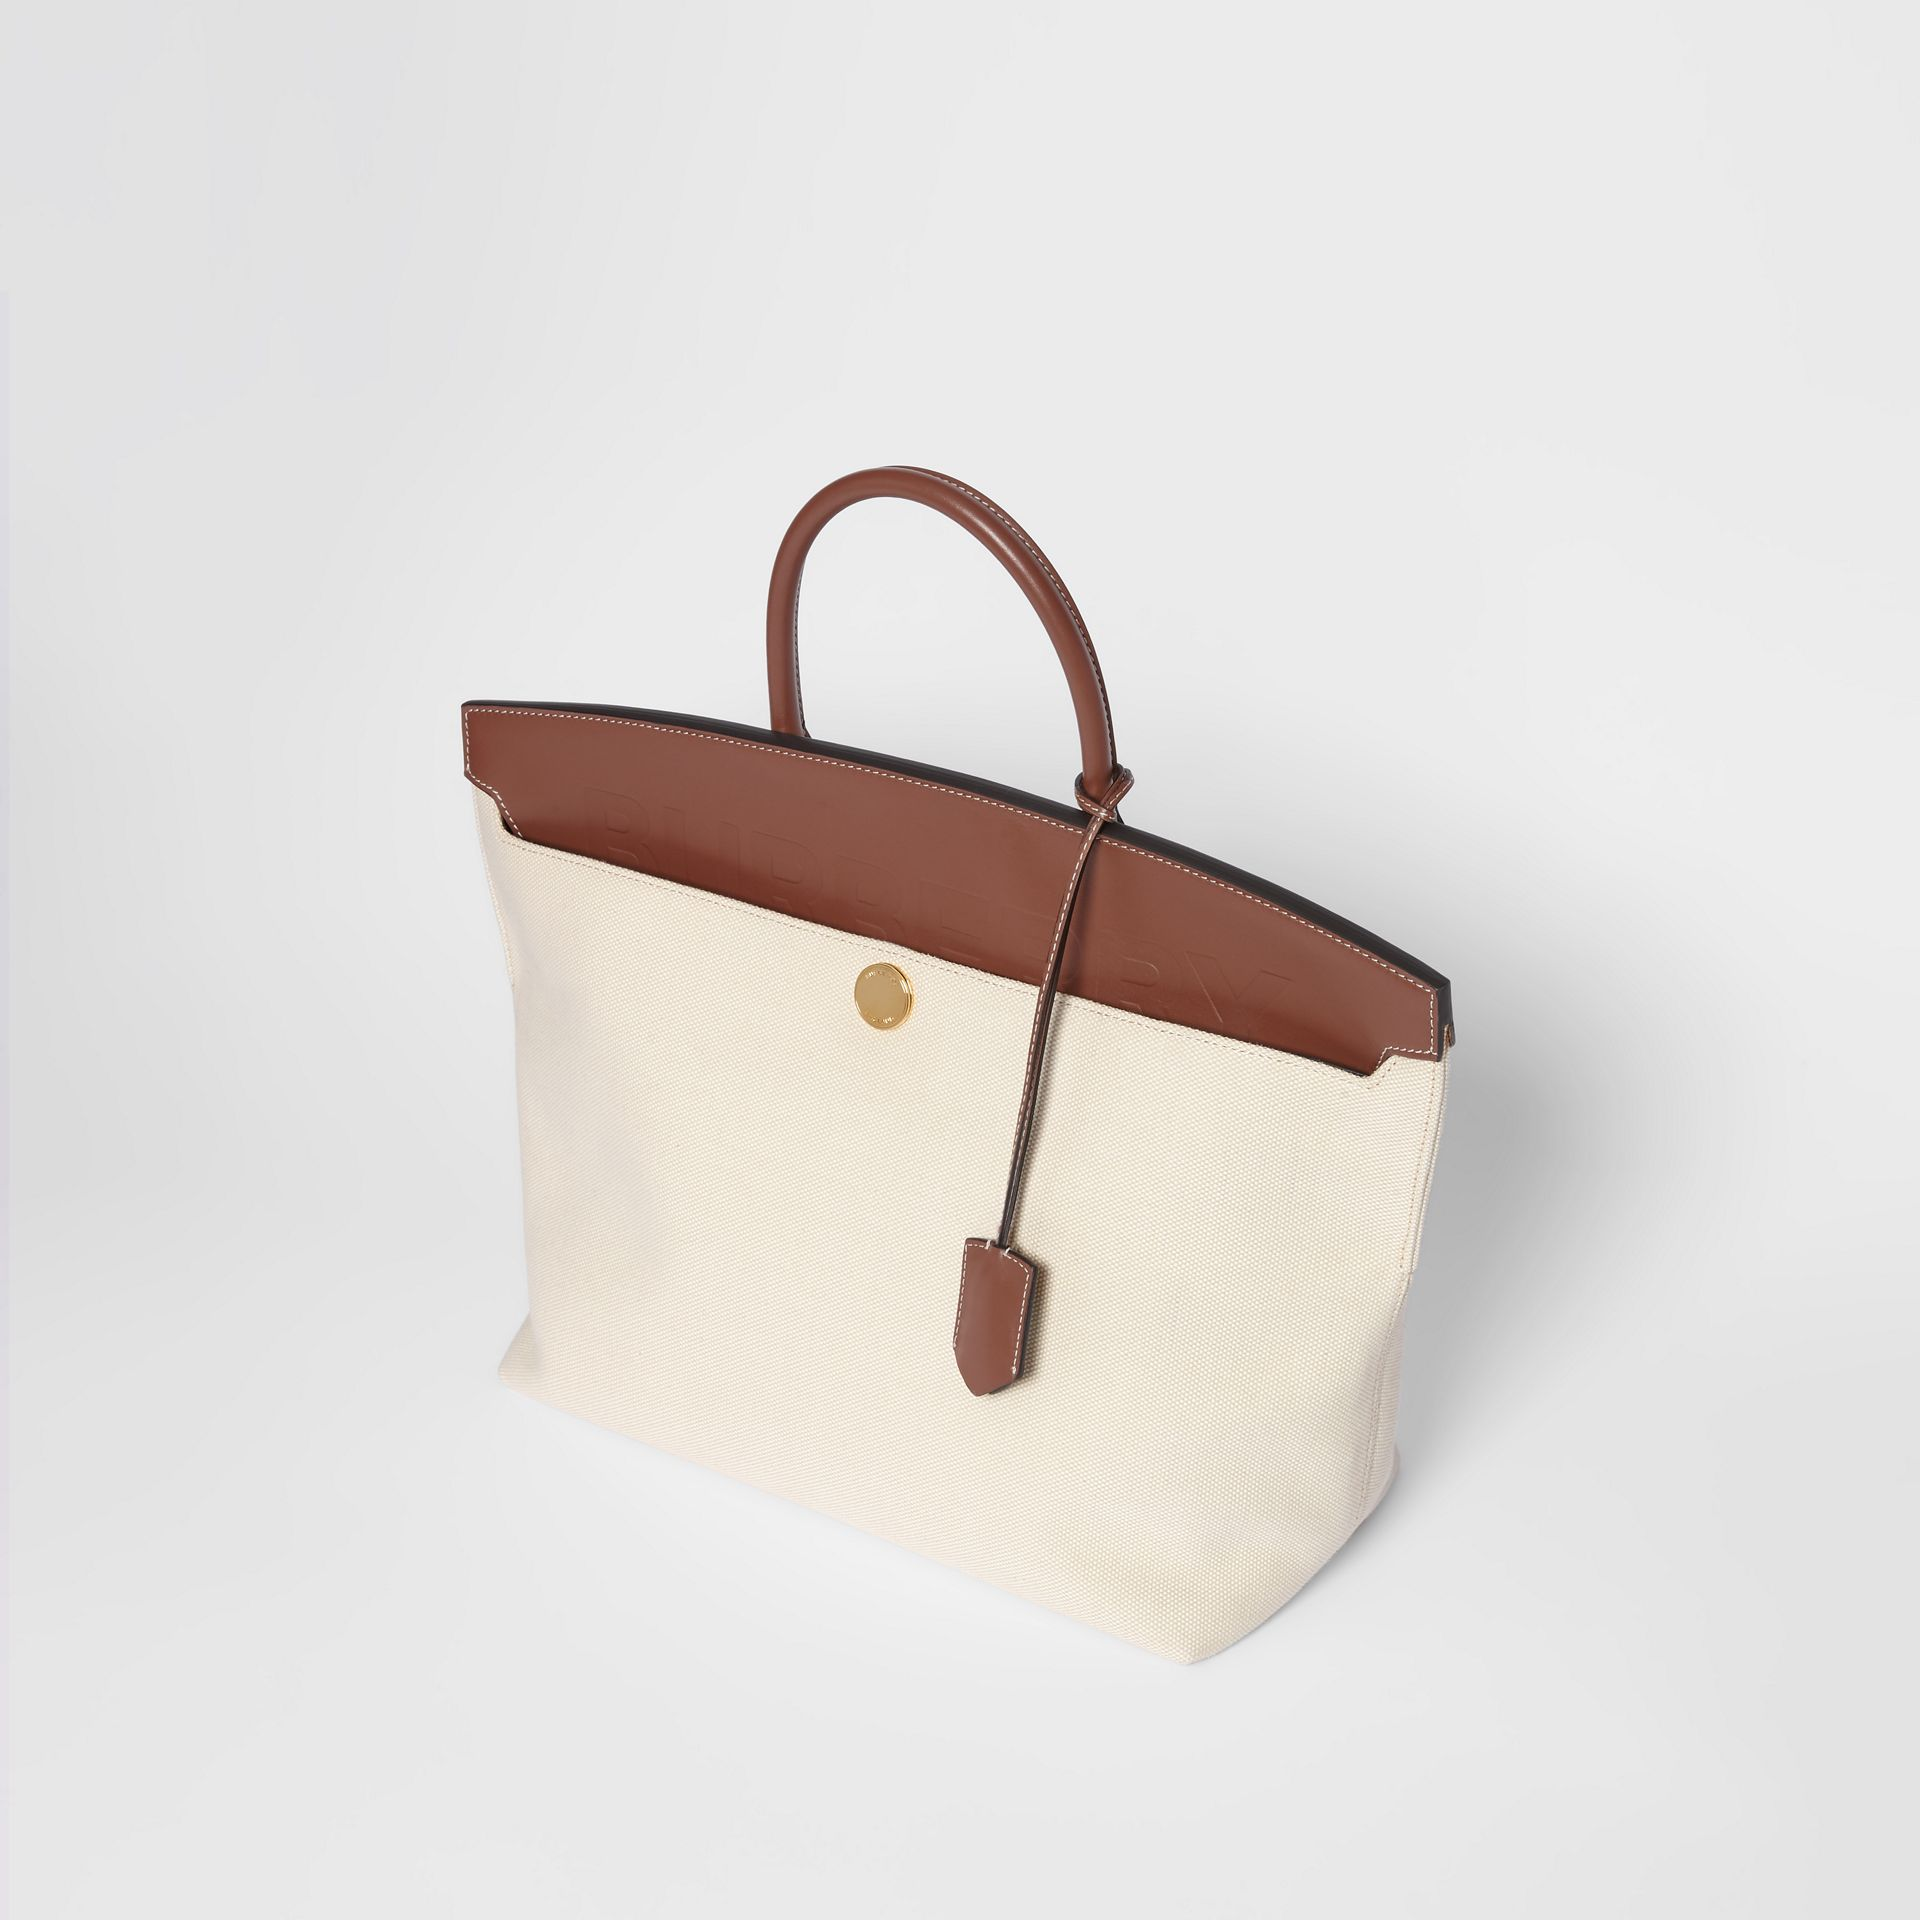 Cotton Canvas and Leather Society Top Handle Bag in Natural/malt Brown - Women | Burberry Australia - gallery image 3